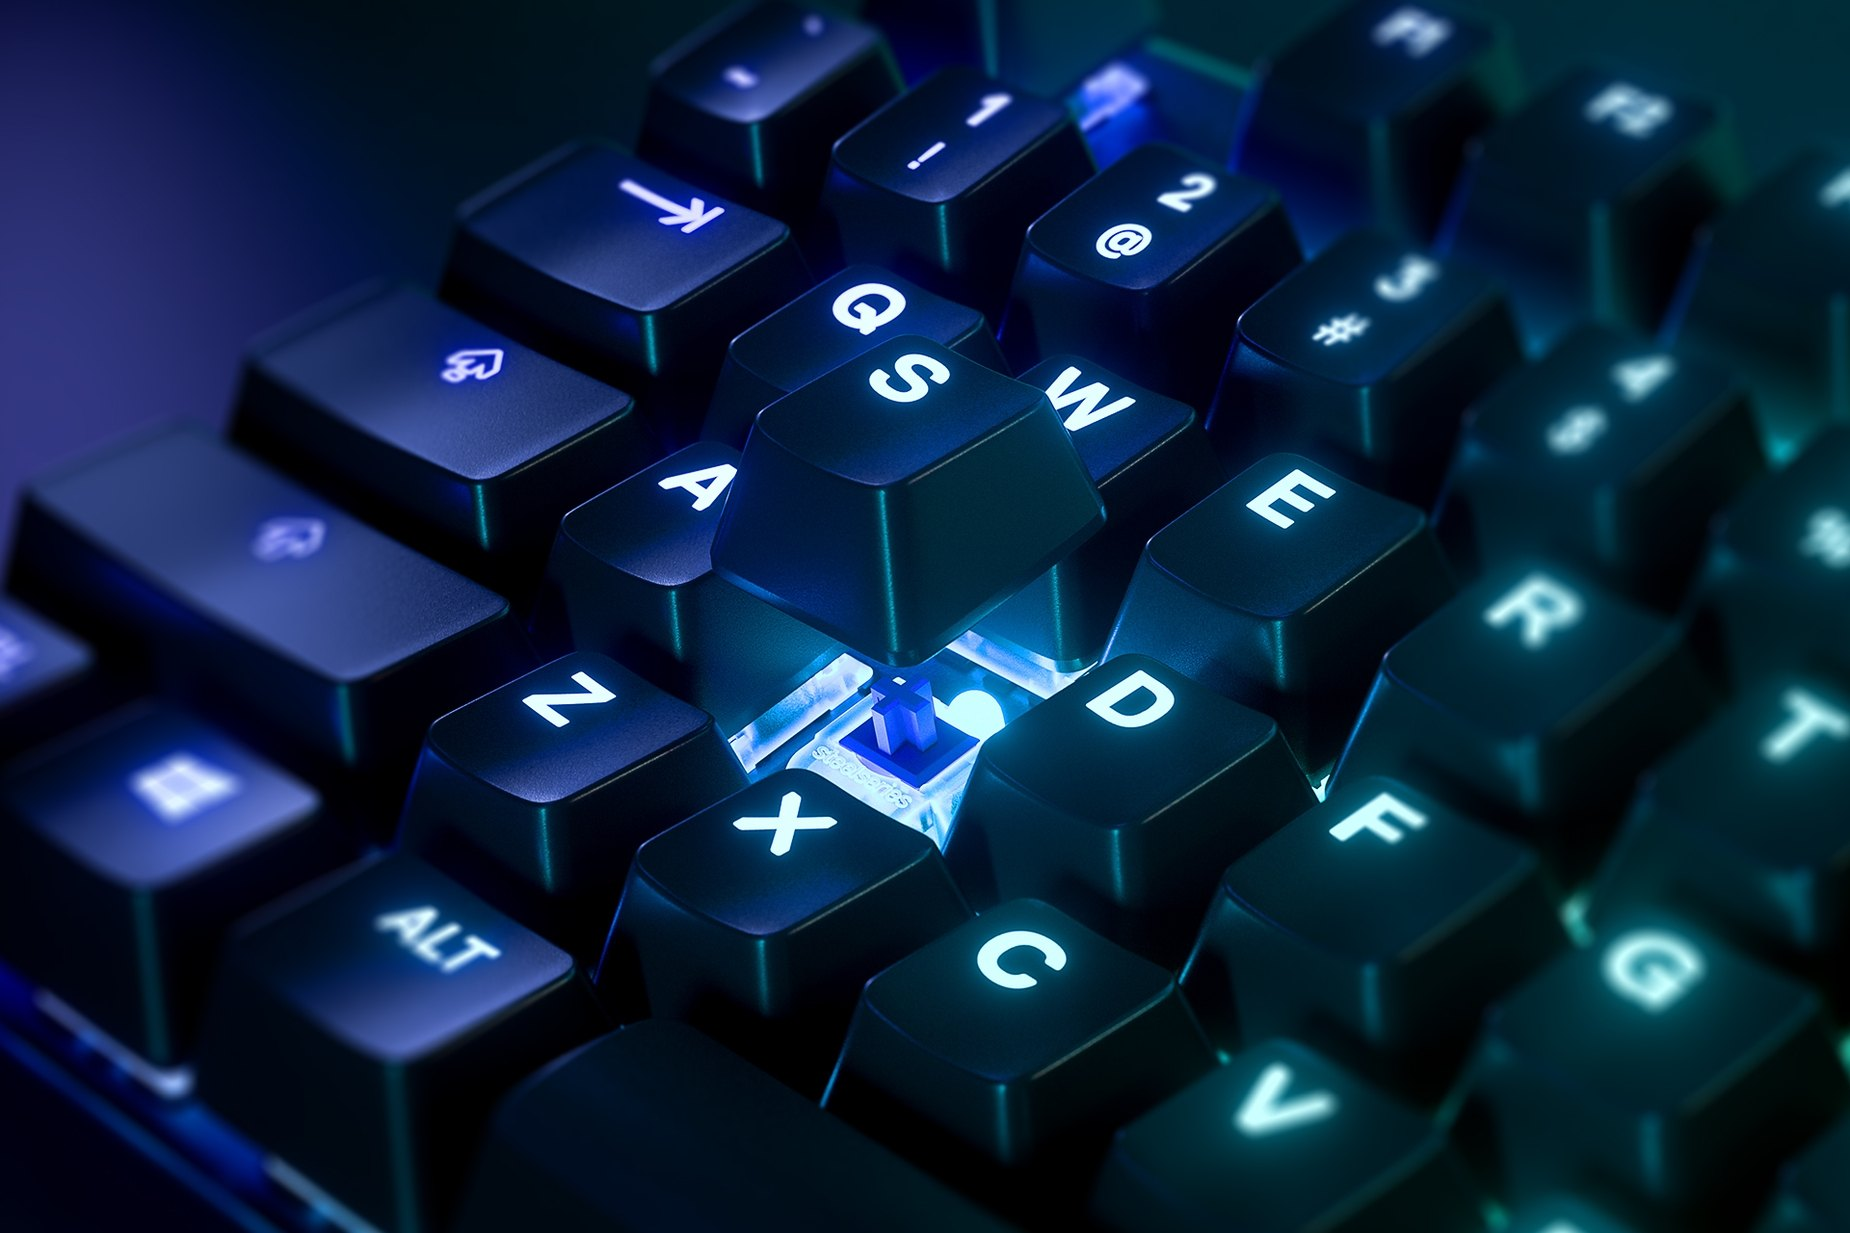 Zoomed in view of a single key on the Nordic - Apex 7 (Blue Switch) gaming keyboard, the key is raised up to show the SteelSeries QX2 Mechanical RGB Switch underneath